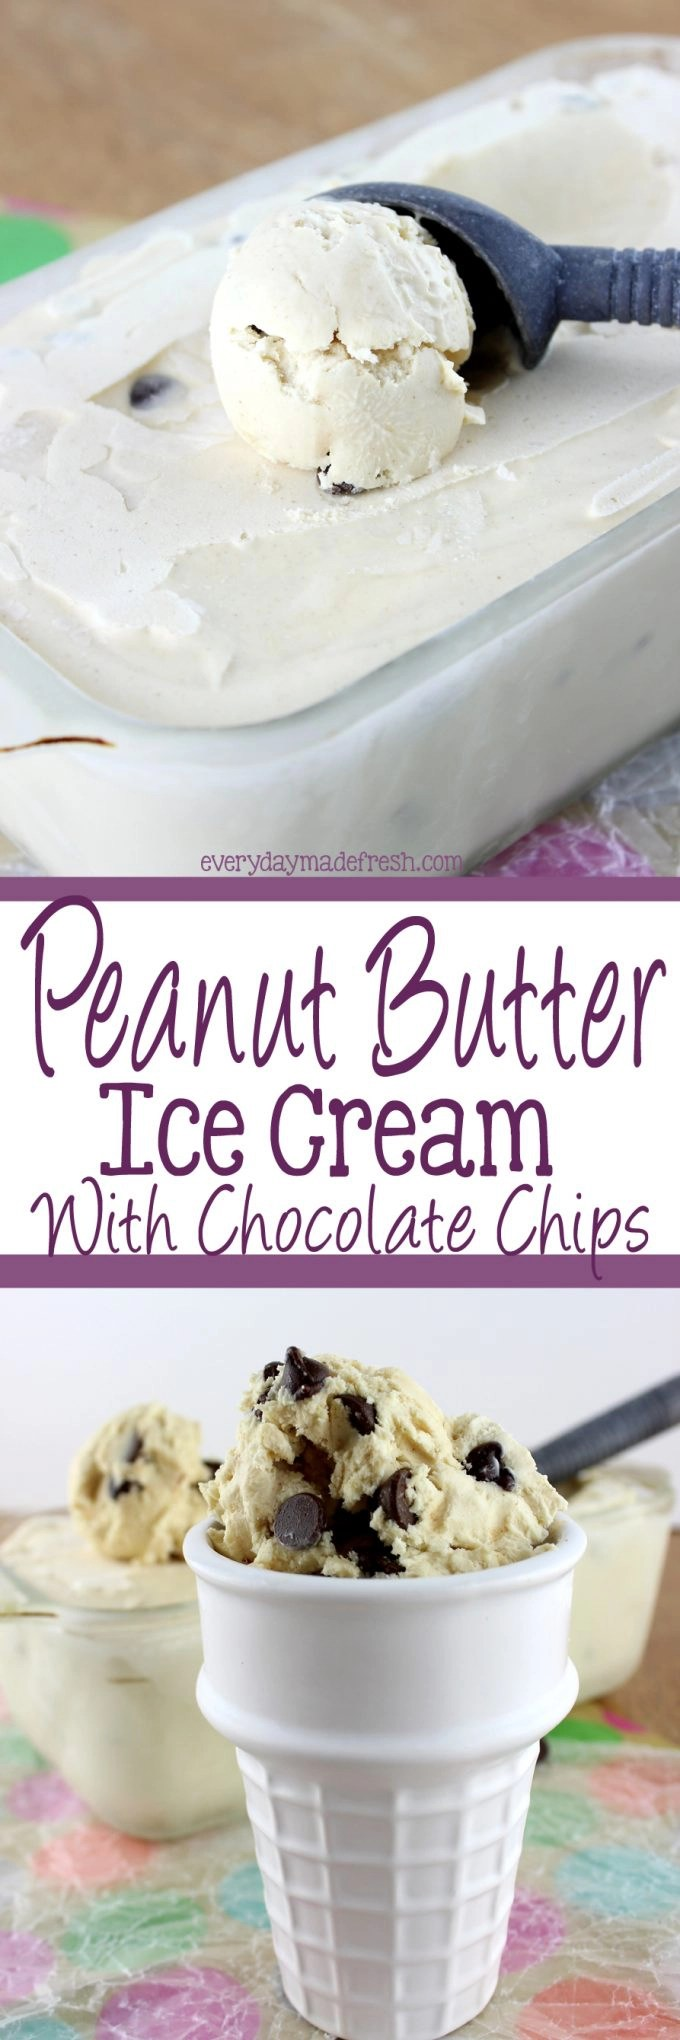 Chocolate and peanut butter come together in this Peanut Butter Ice Cream with Chocolate Chips and become a match made in Heaven. | EverydayMadeFresh.com